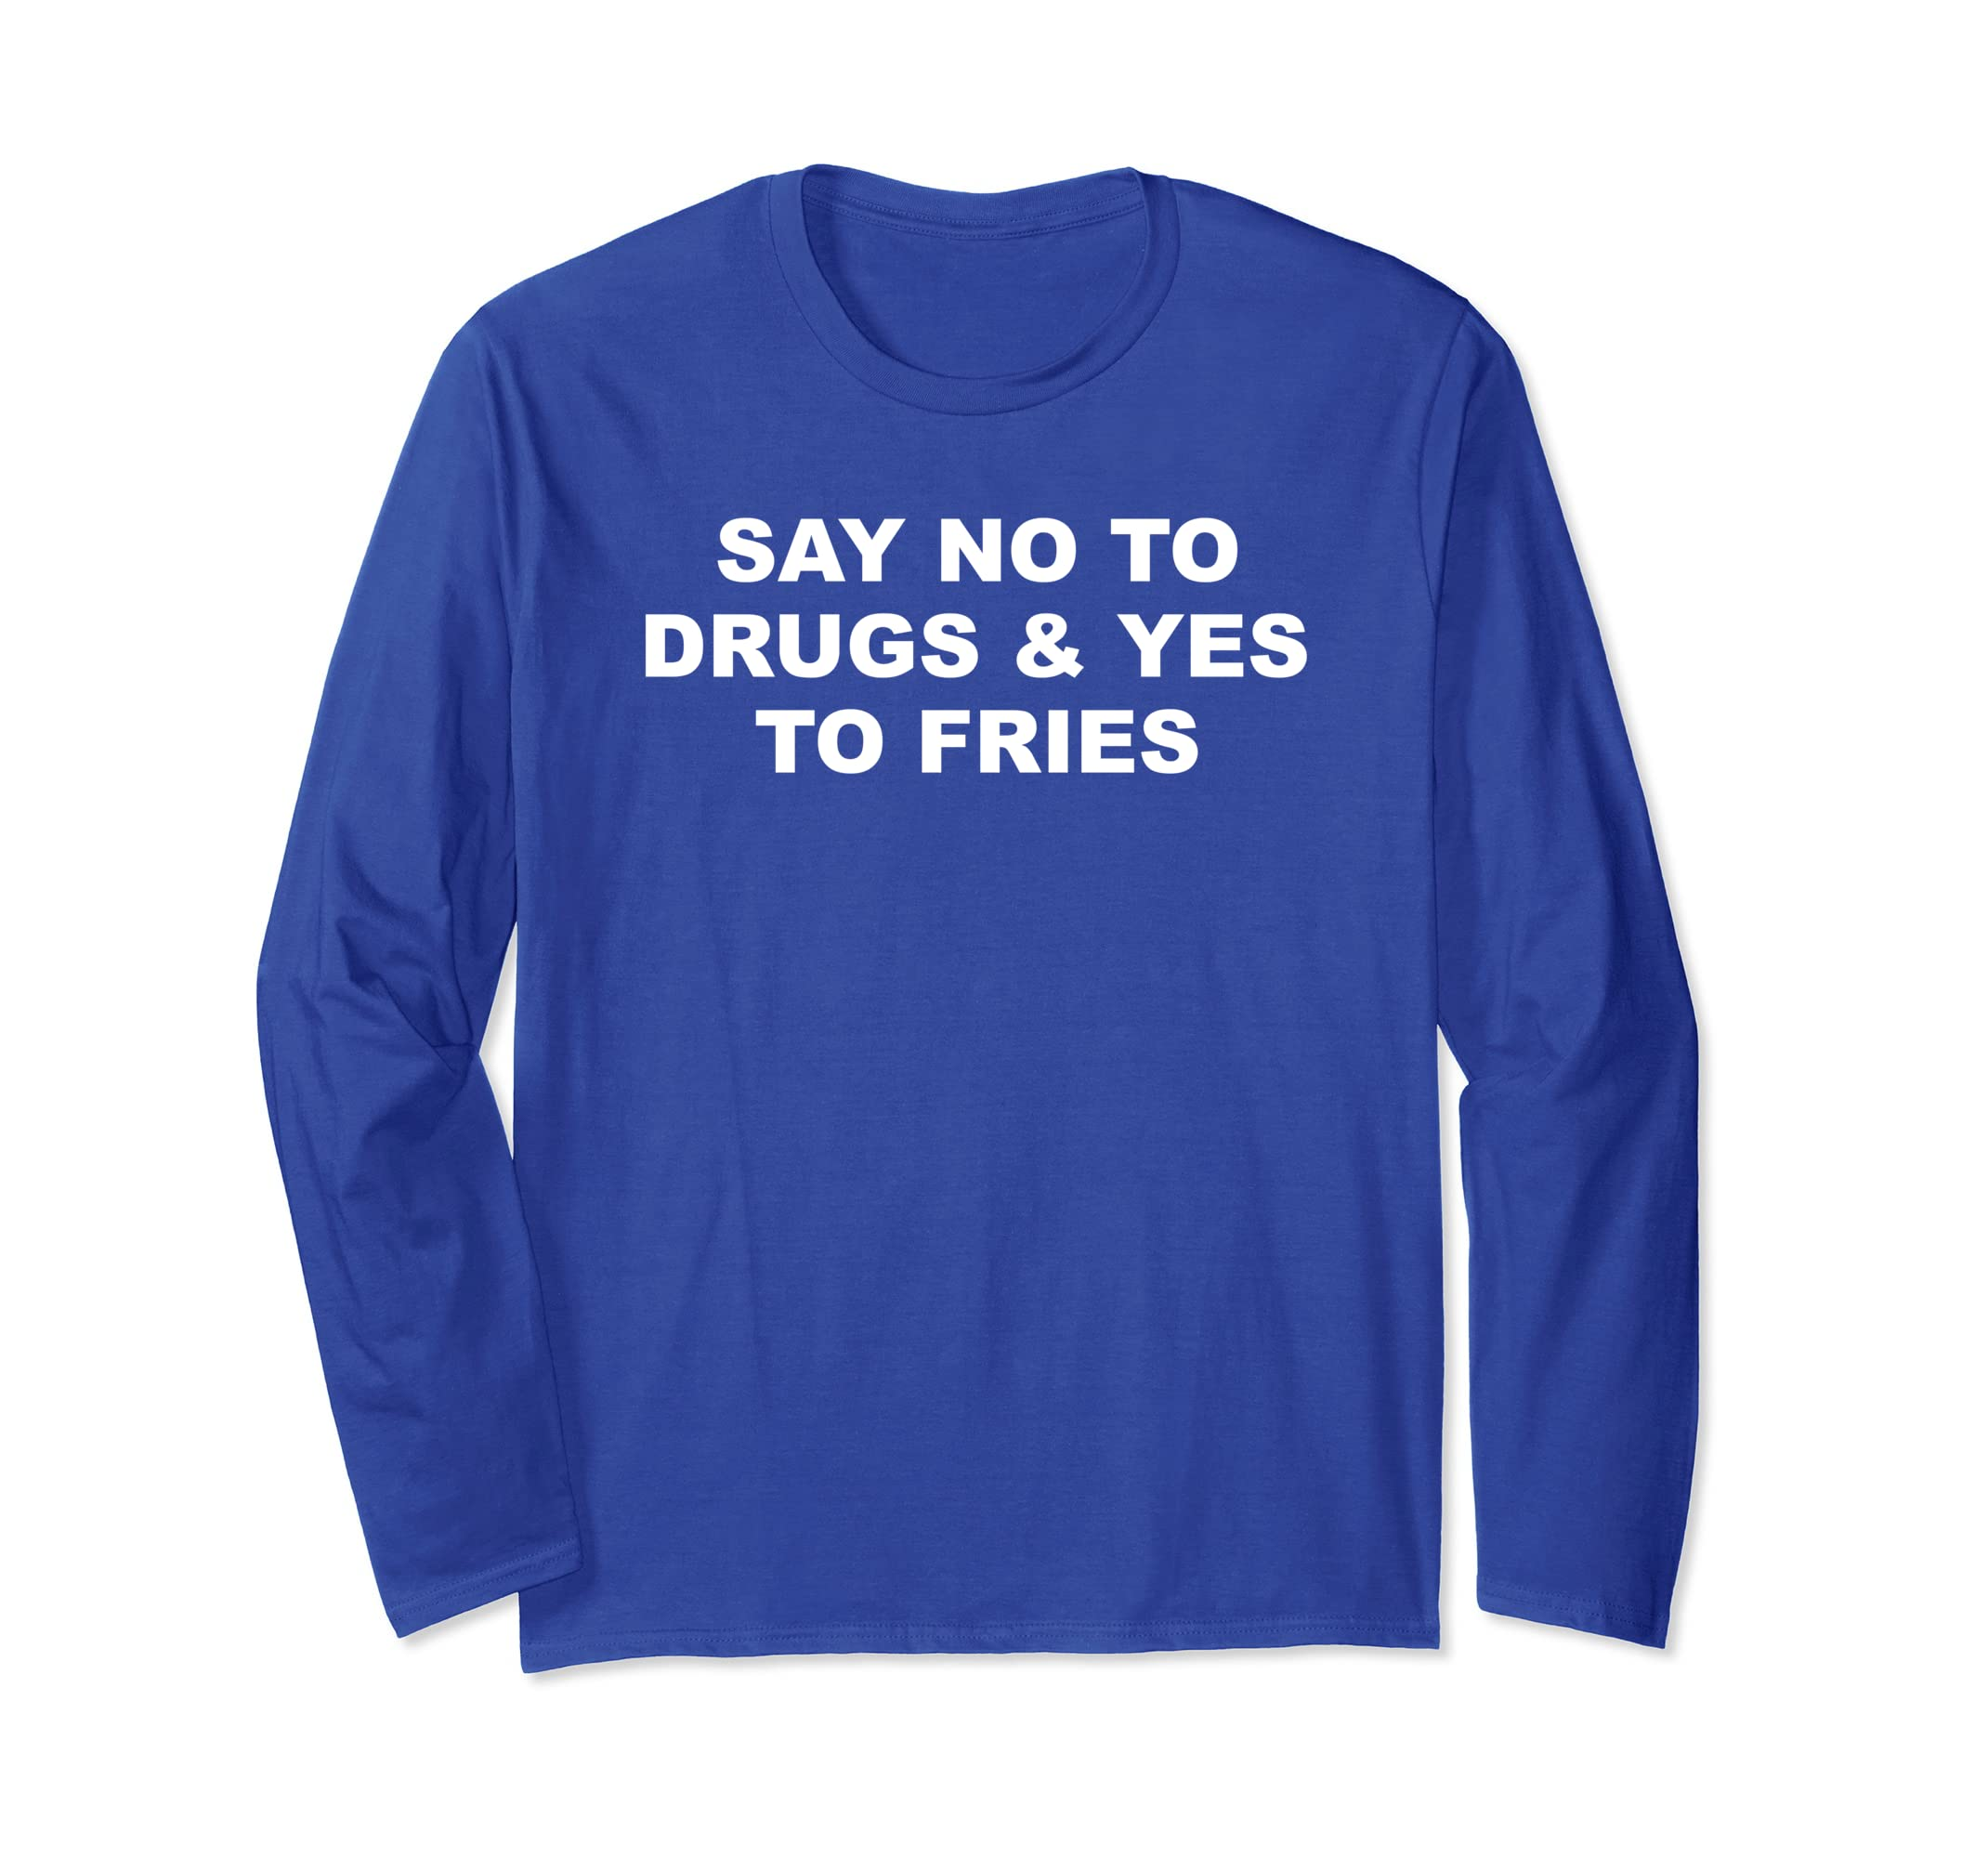 f5e9e2c05 Amazon.com  Say No To Drugs   Yes To Fries - Long Sleeve T Shirts  Clothing